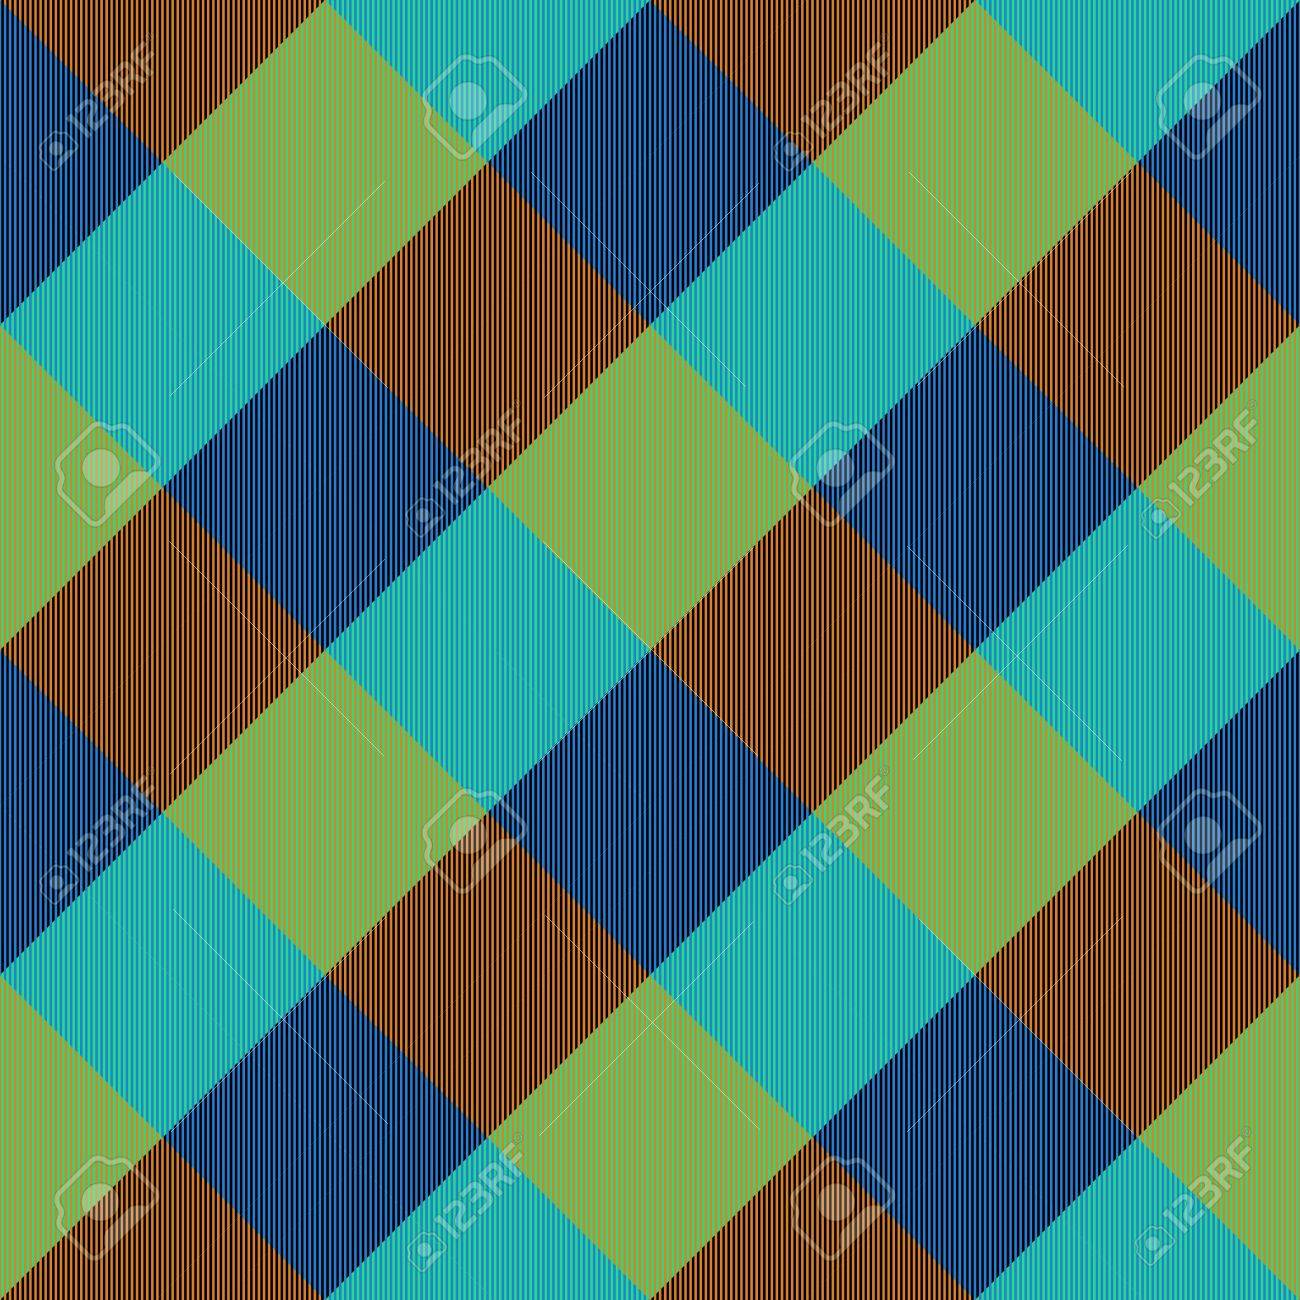 Abstract Turquoise Blue Brown Yellow Checkered Pattern With Complementary Colors Stock Photo